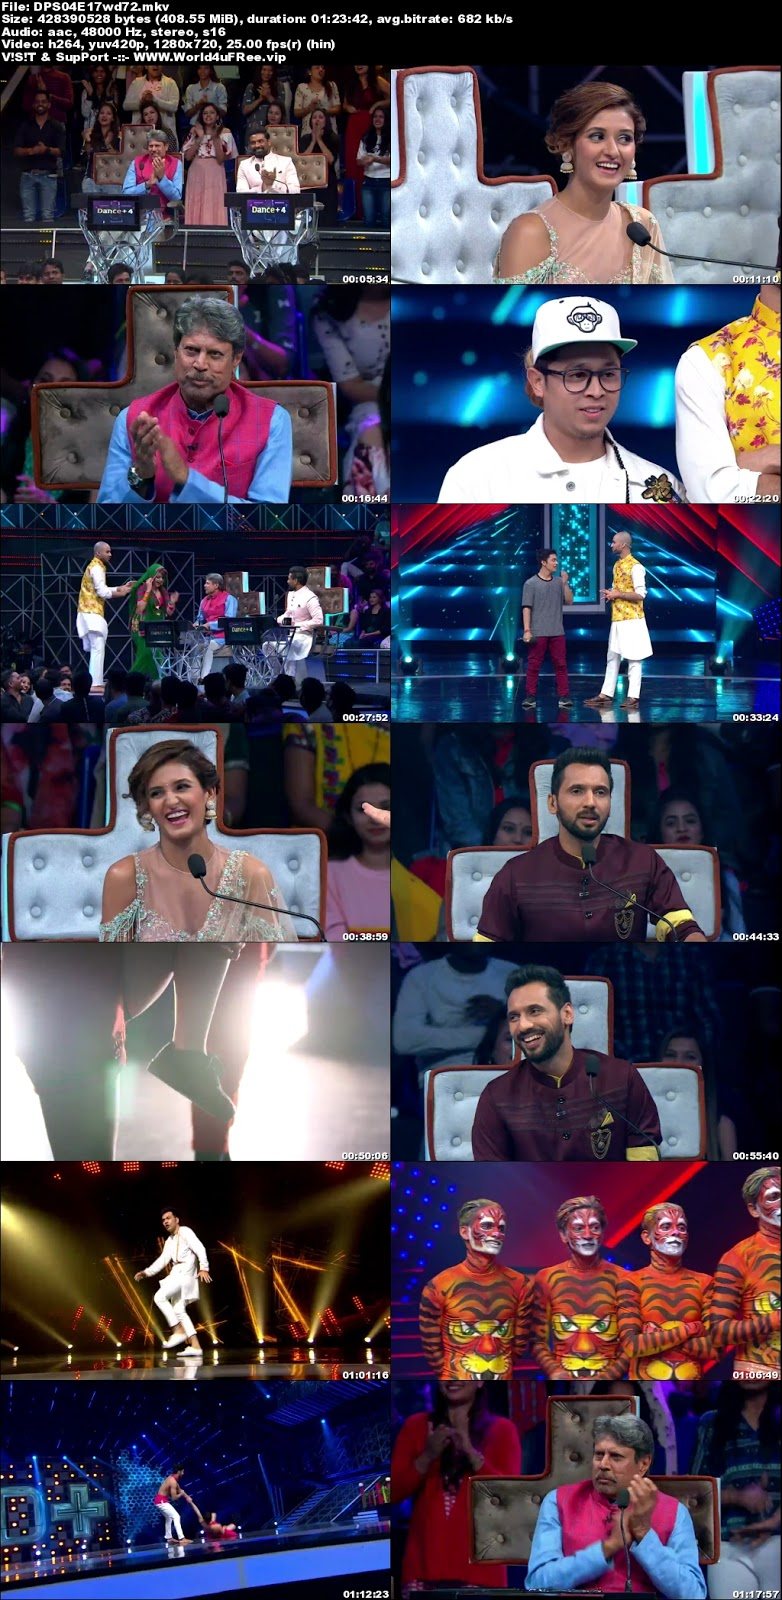 Dance Plus S4 02 December 2018 720p WEBRip 300Mb x264 world4ufree.fun tv show Dance Plus 4 2018 hindi tv show Dance Plus 4 2018 Season 4 Star Plus tv show compressed small size free download or watch online at world4ufree.fun